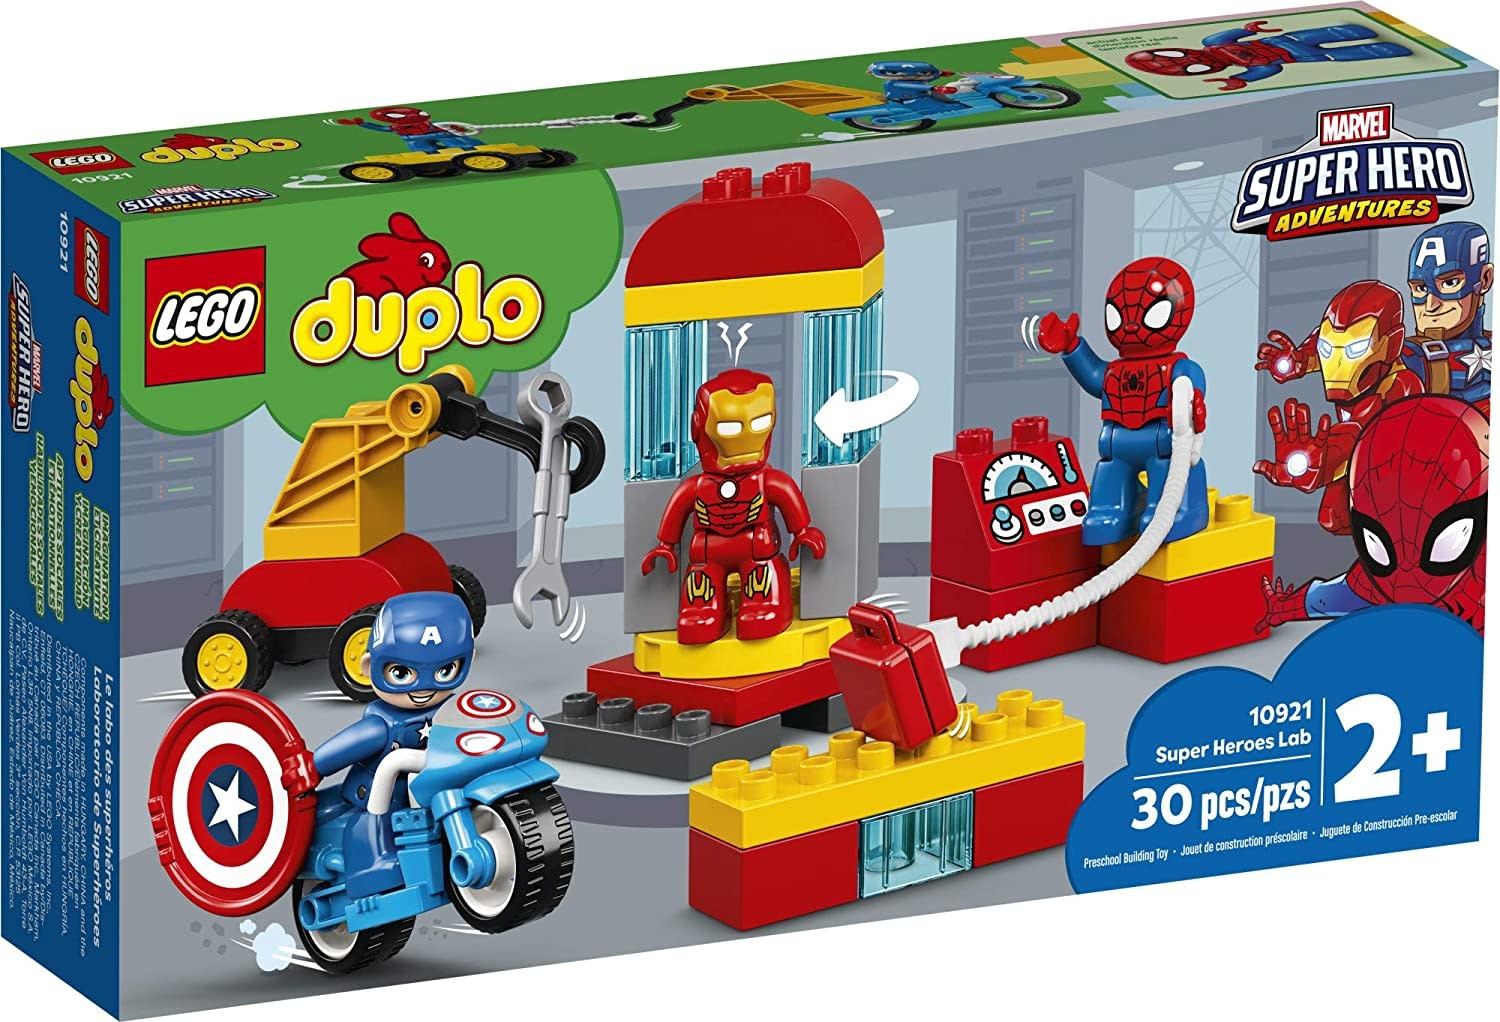 10921 Super Heroes Lab by LEGO Duplo